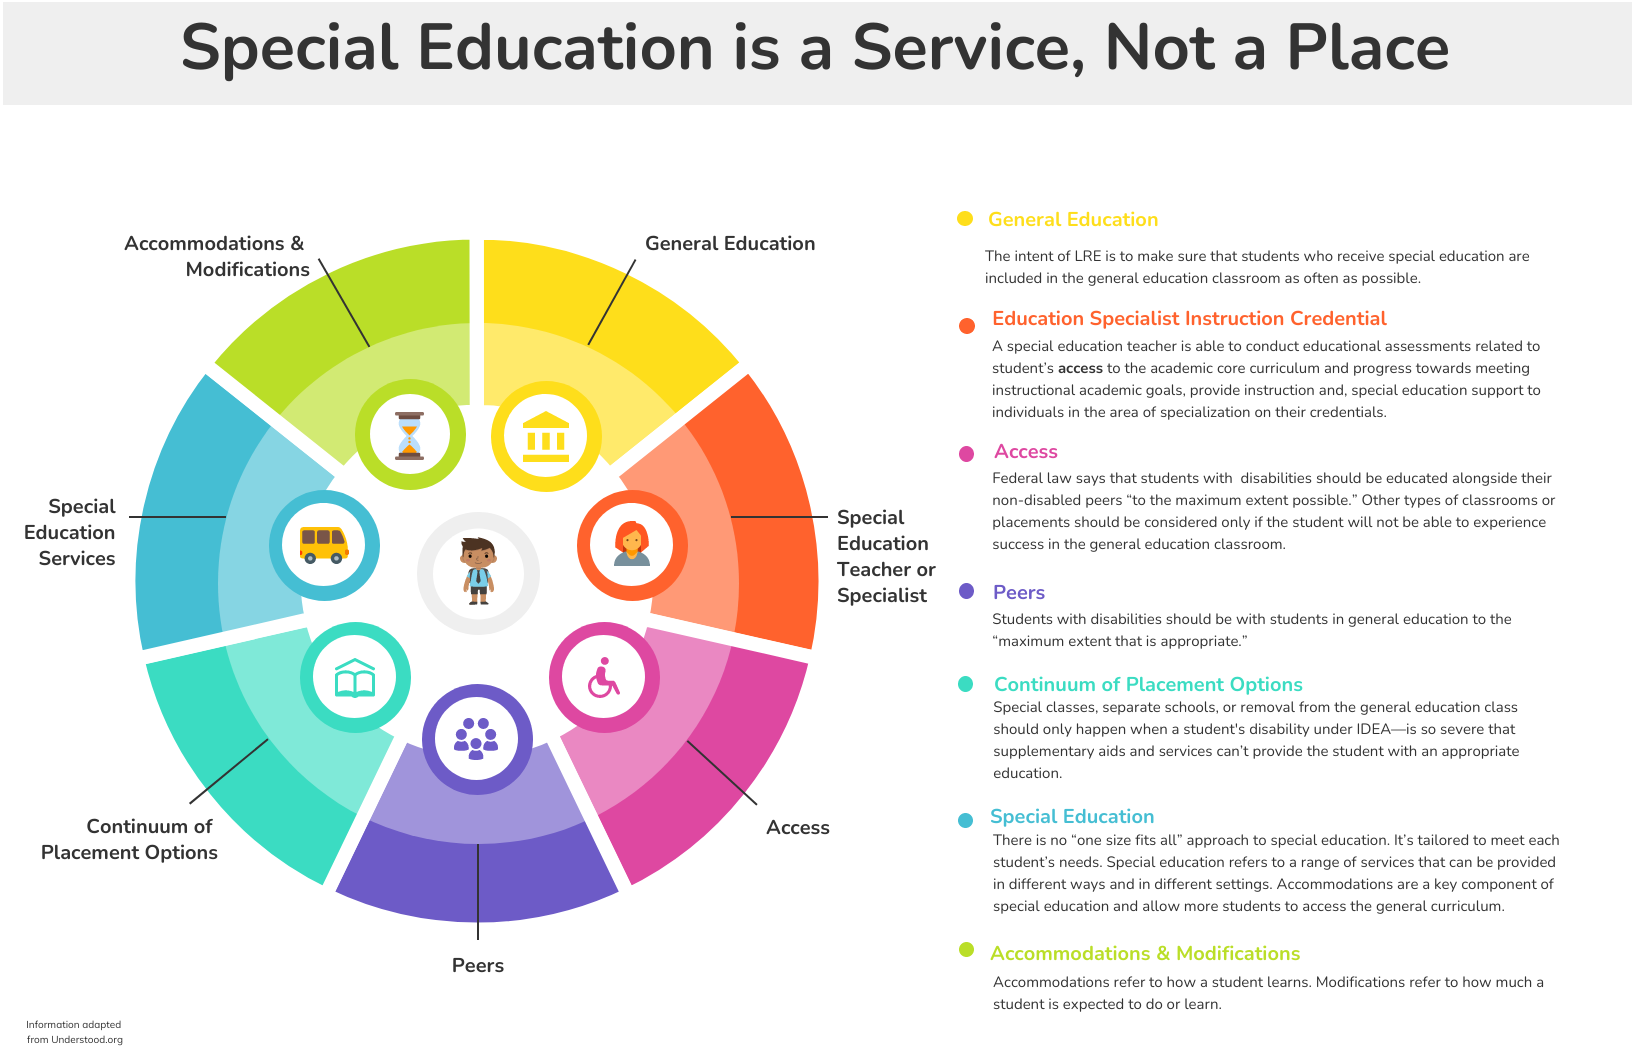 Special Education is a service not a place.